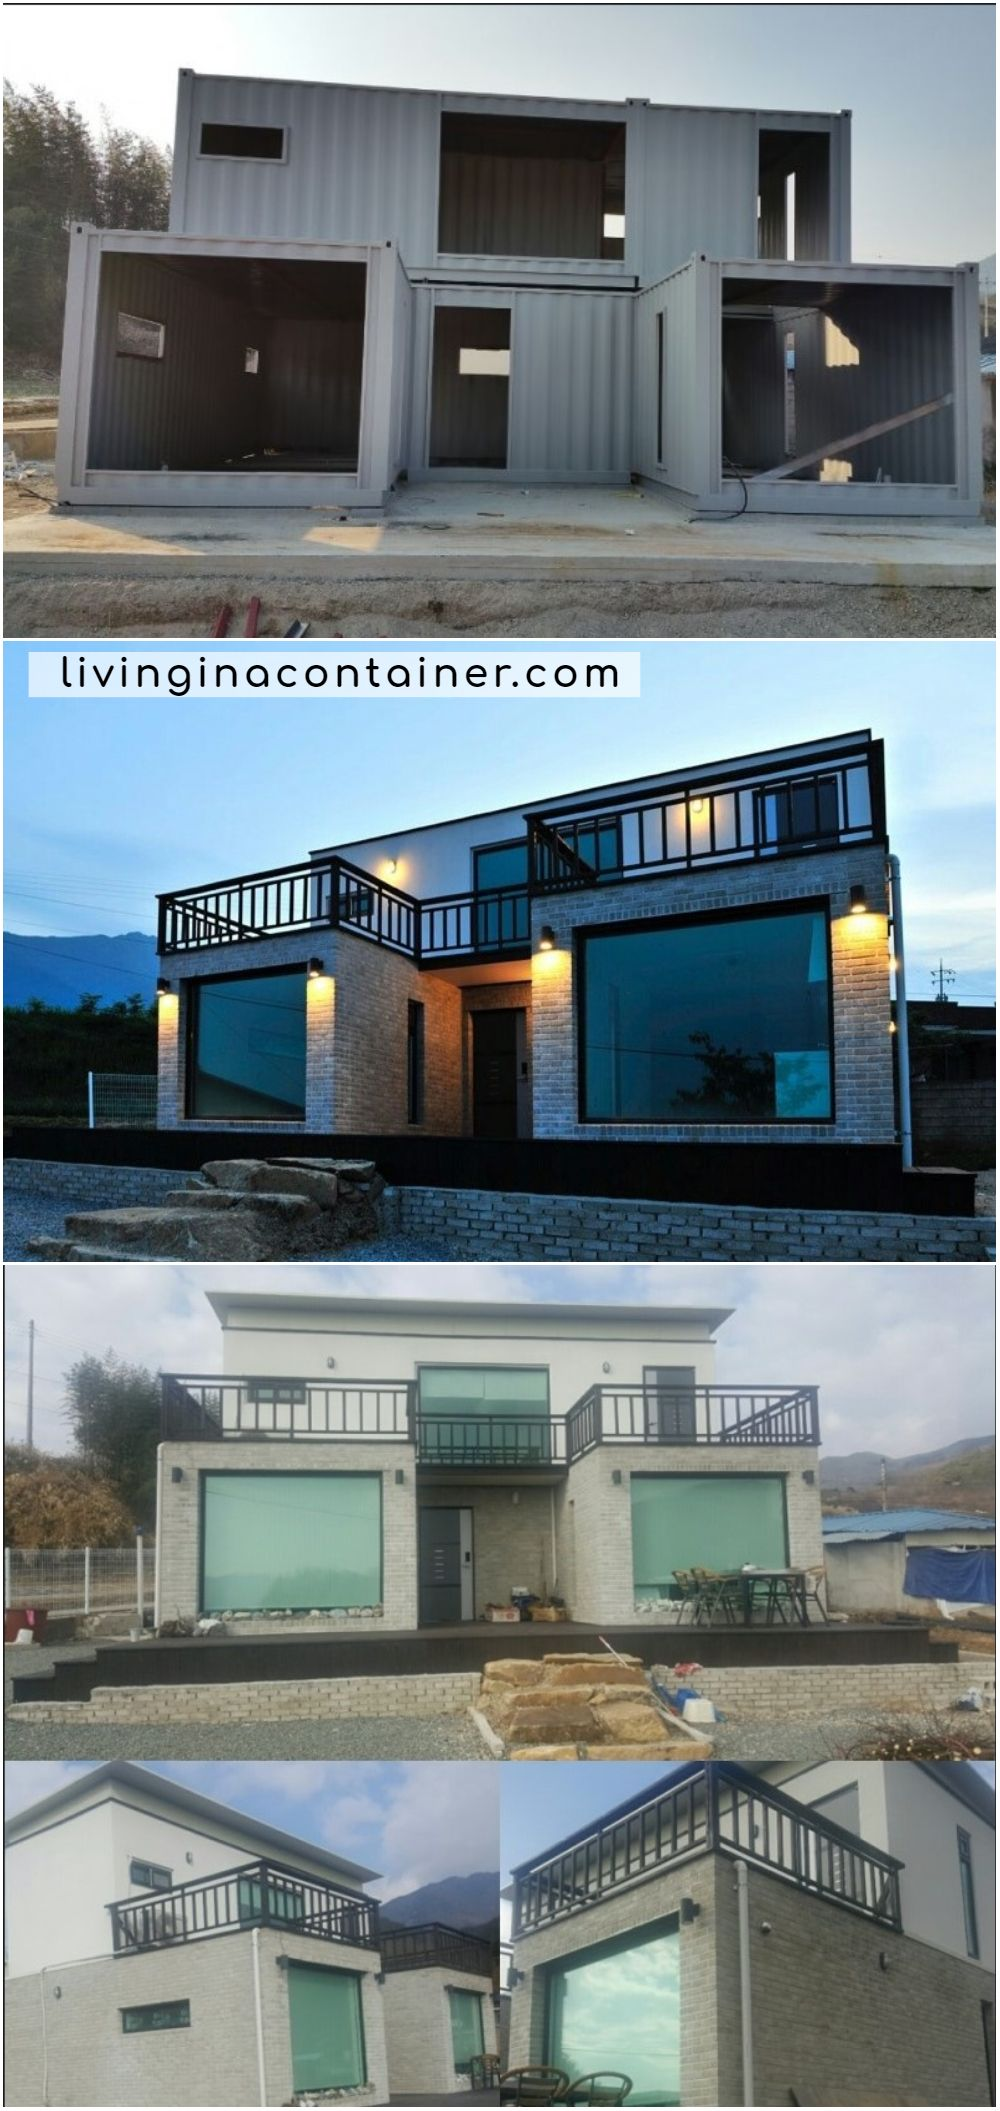 Luxury Container House Located South Korea